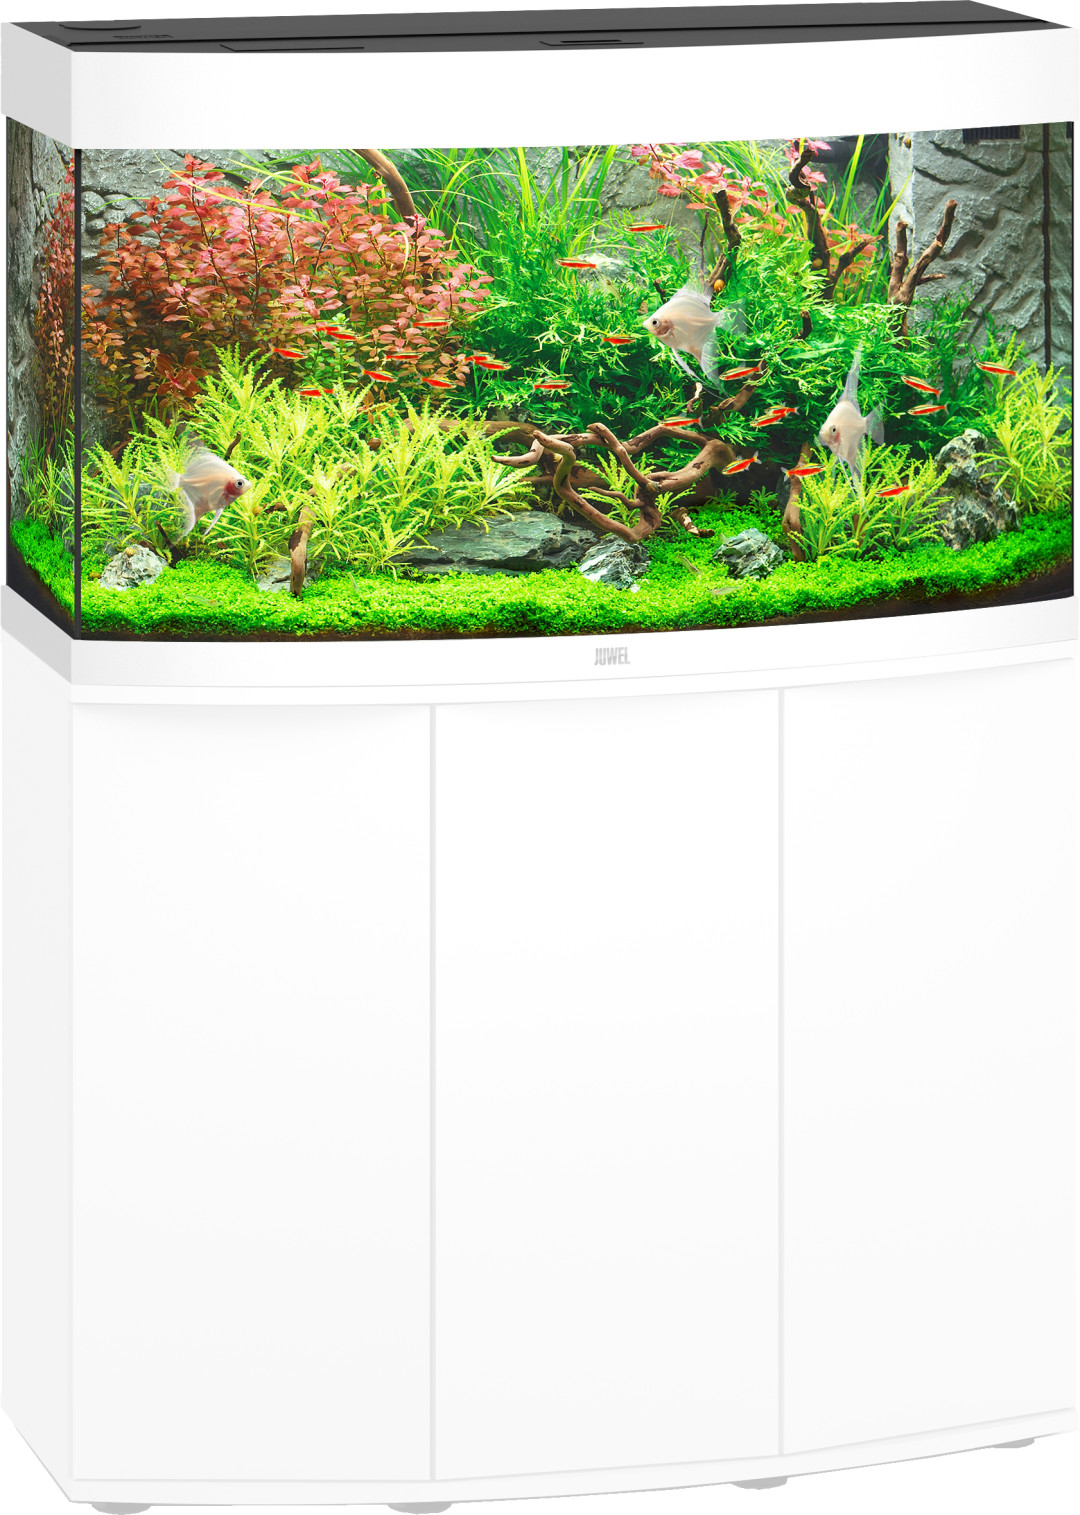 Juwel aquarium Vision 180 LED wit